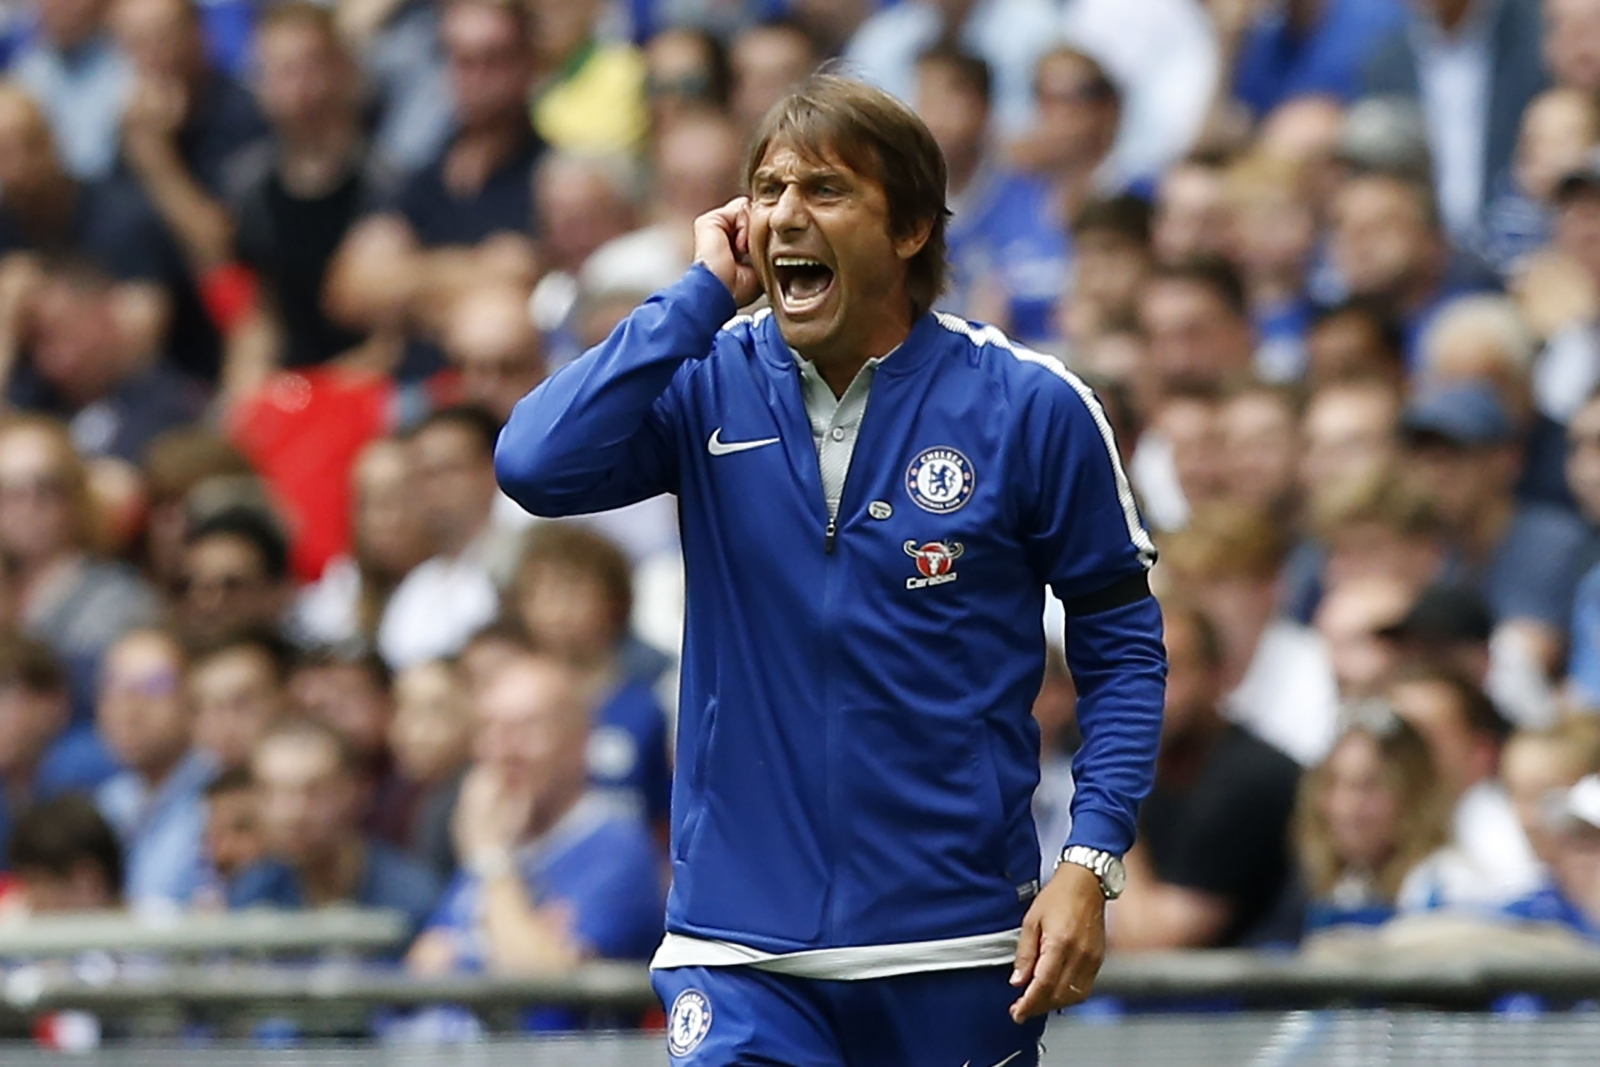 'Perfect time' for Tottenham to be playing 'wounded' Chelsea says Jamie Redknapp